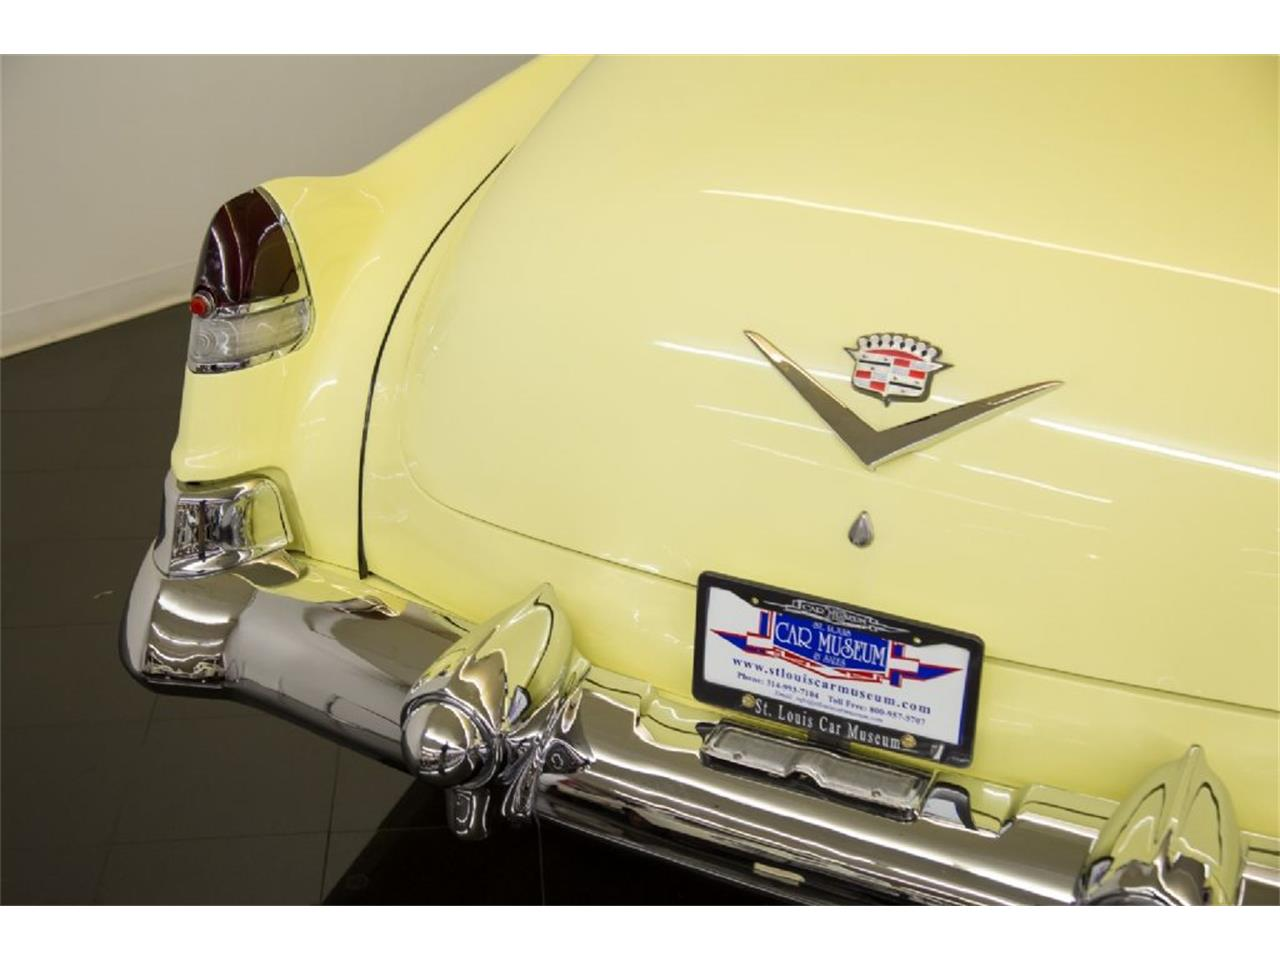 Large Picture of 1953 Cadillac Series 62 located in St. Louis Missouri - $49,900.00 Offered by St. Louis Car Museum - Q3L2